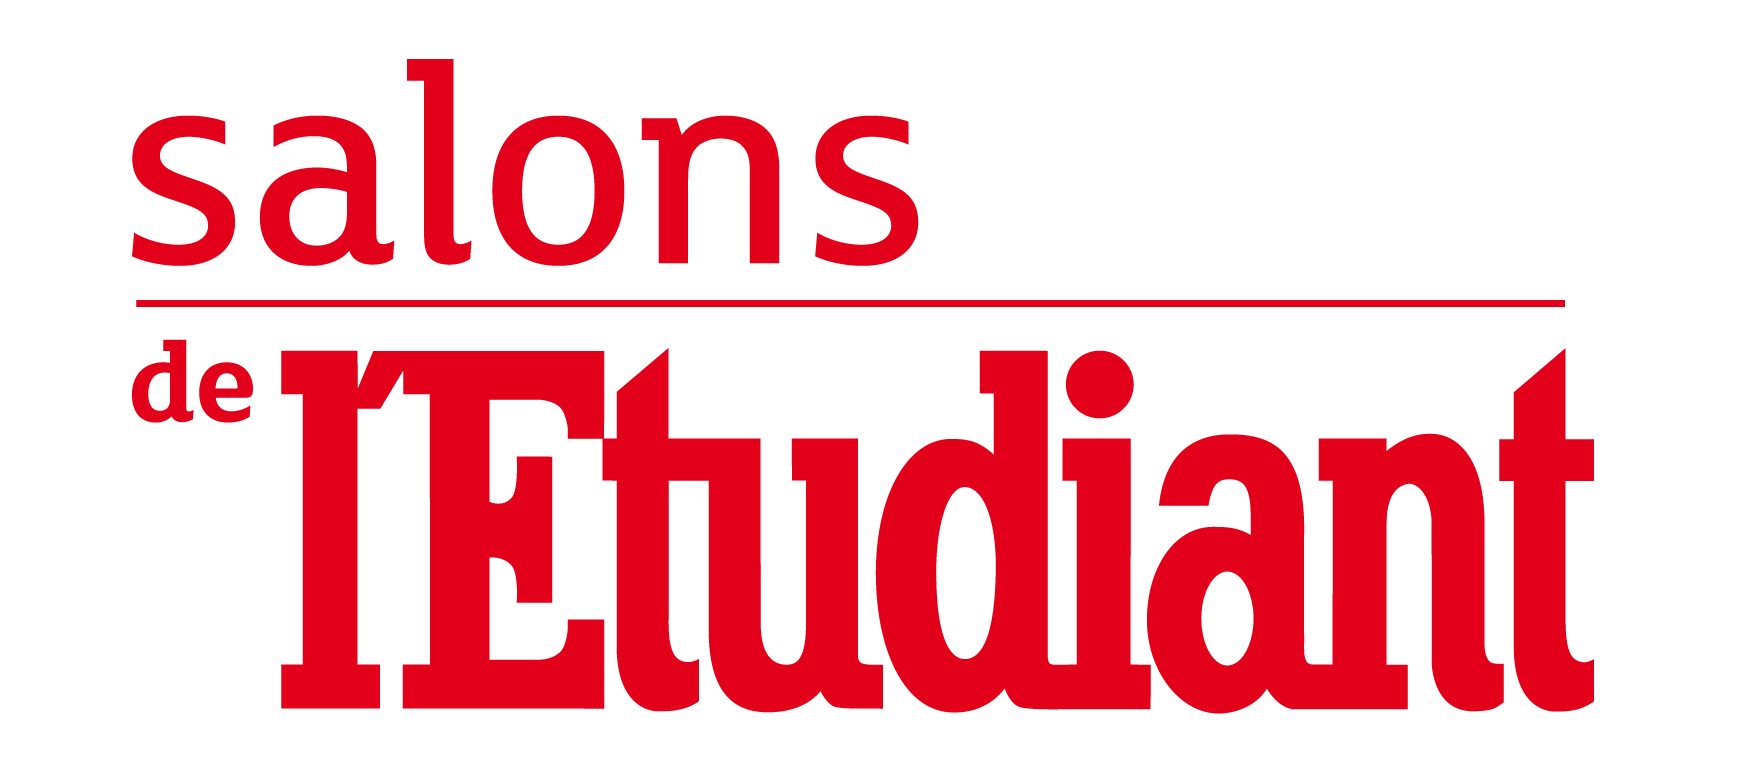 Salon de l 39 tudiant rennes 2017 formations et pr pas for Salon etudiant rennes